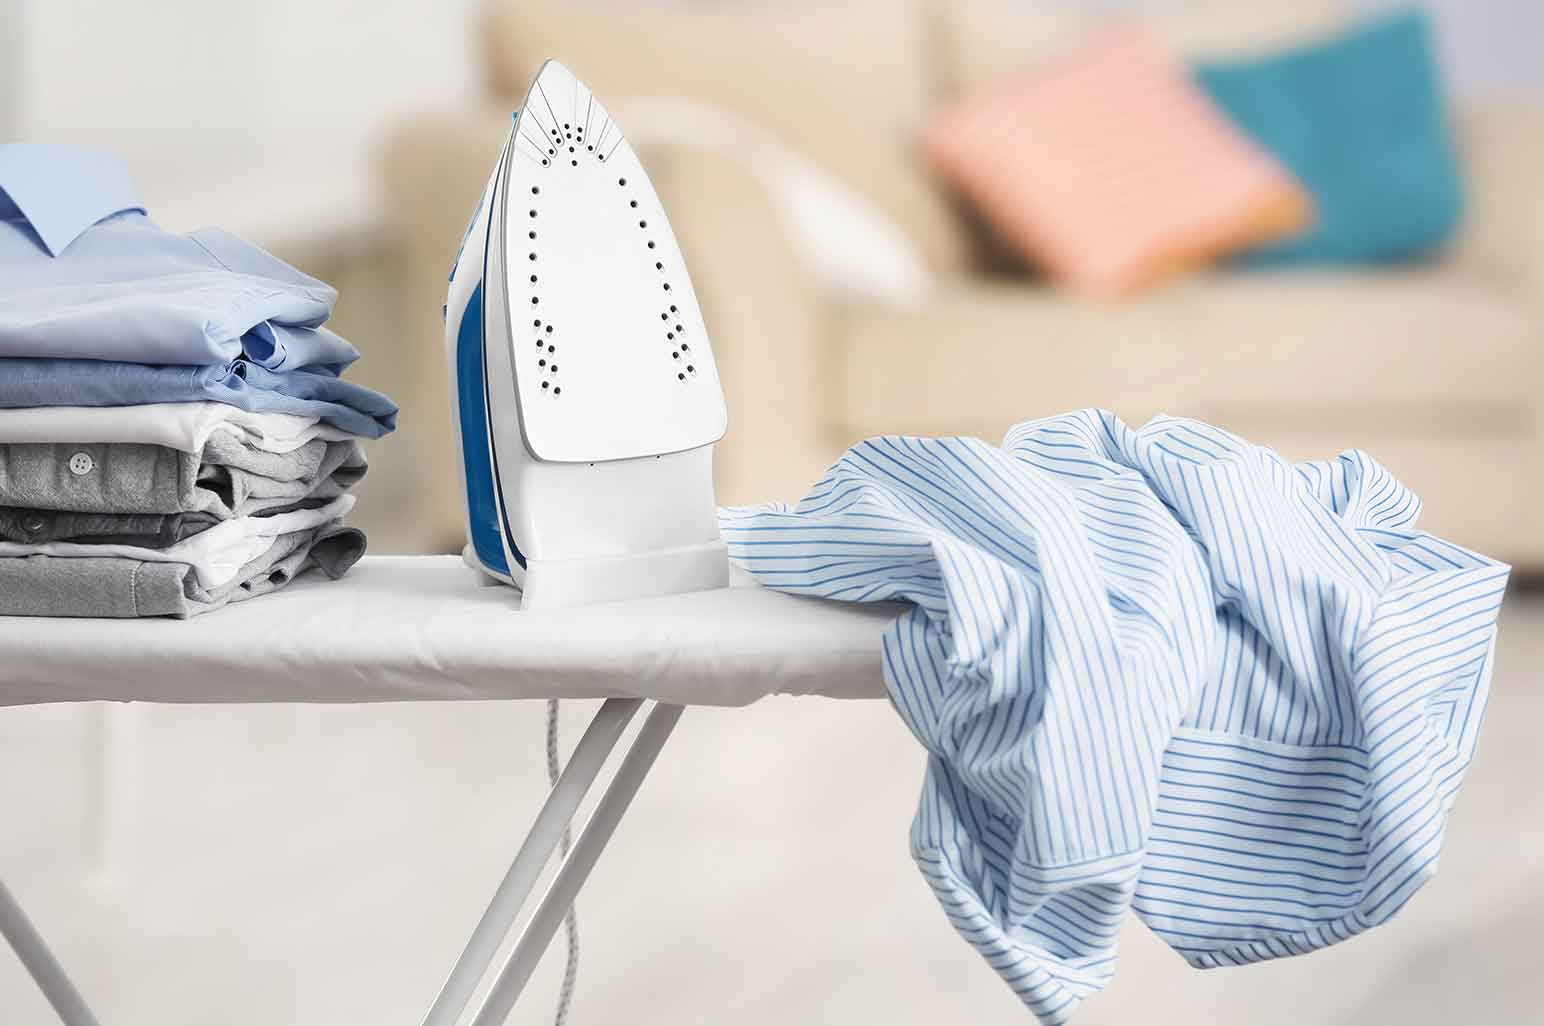 What You Should Know About Ironing